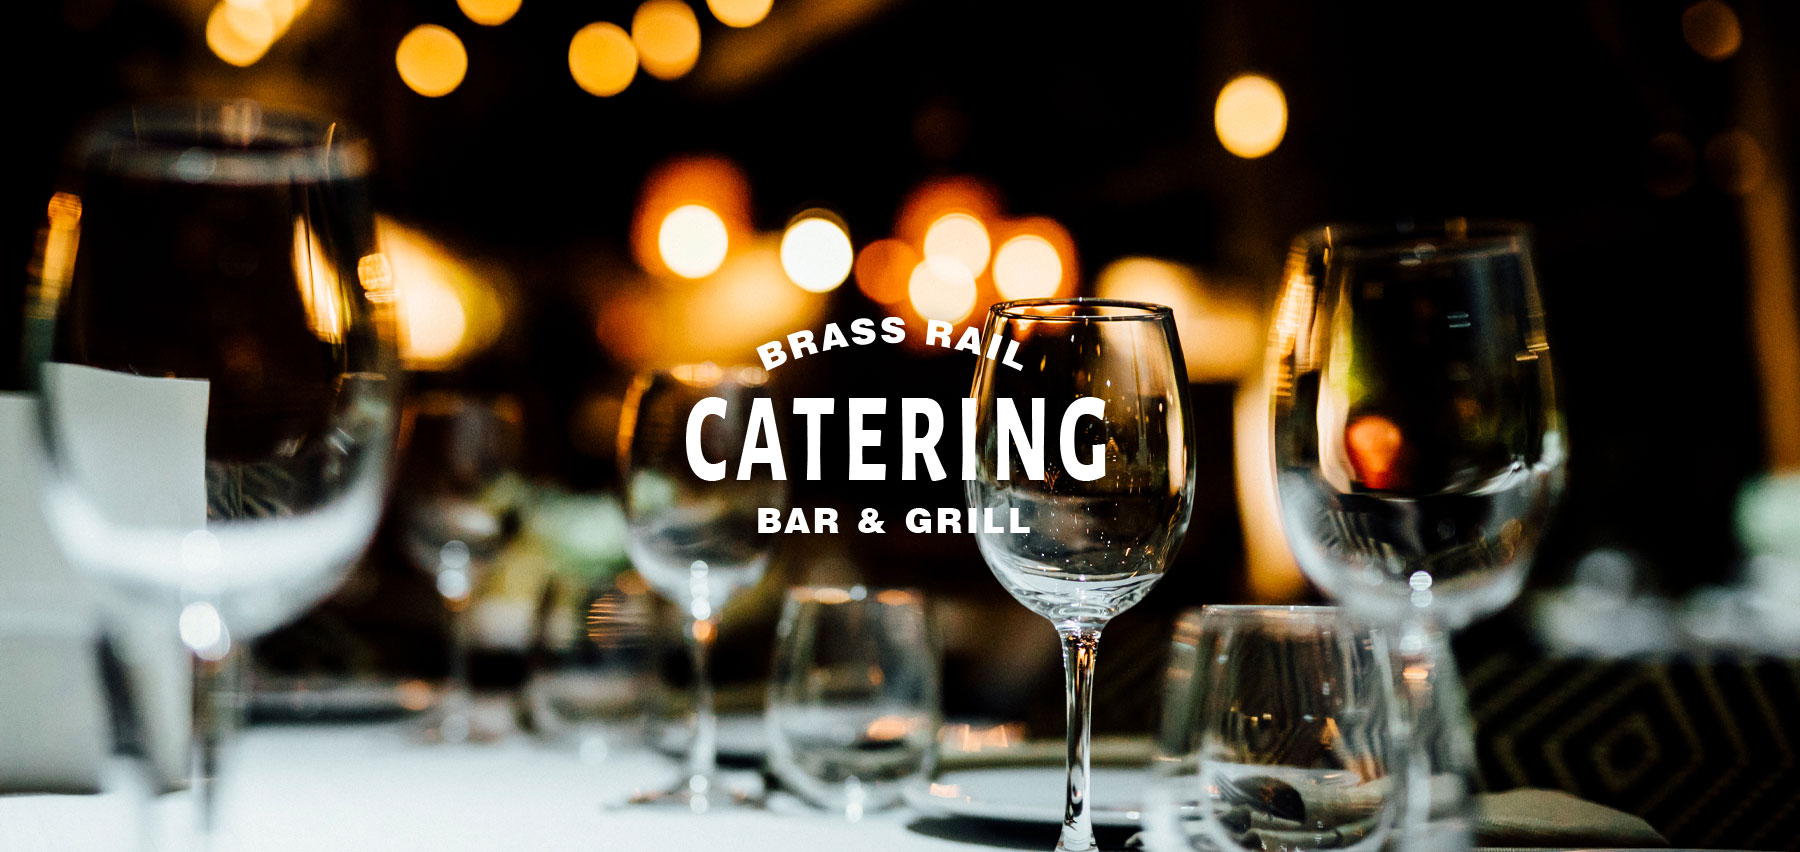 have your next party catered by the Brass Rail Bar & Grill in Matawan